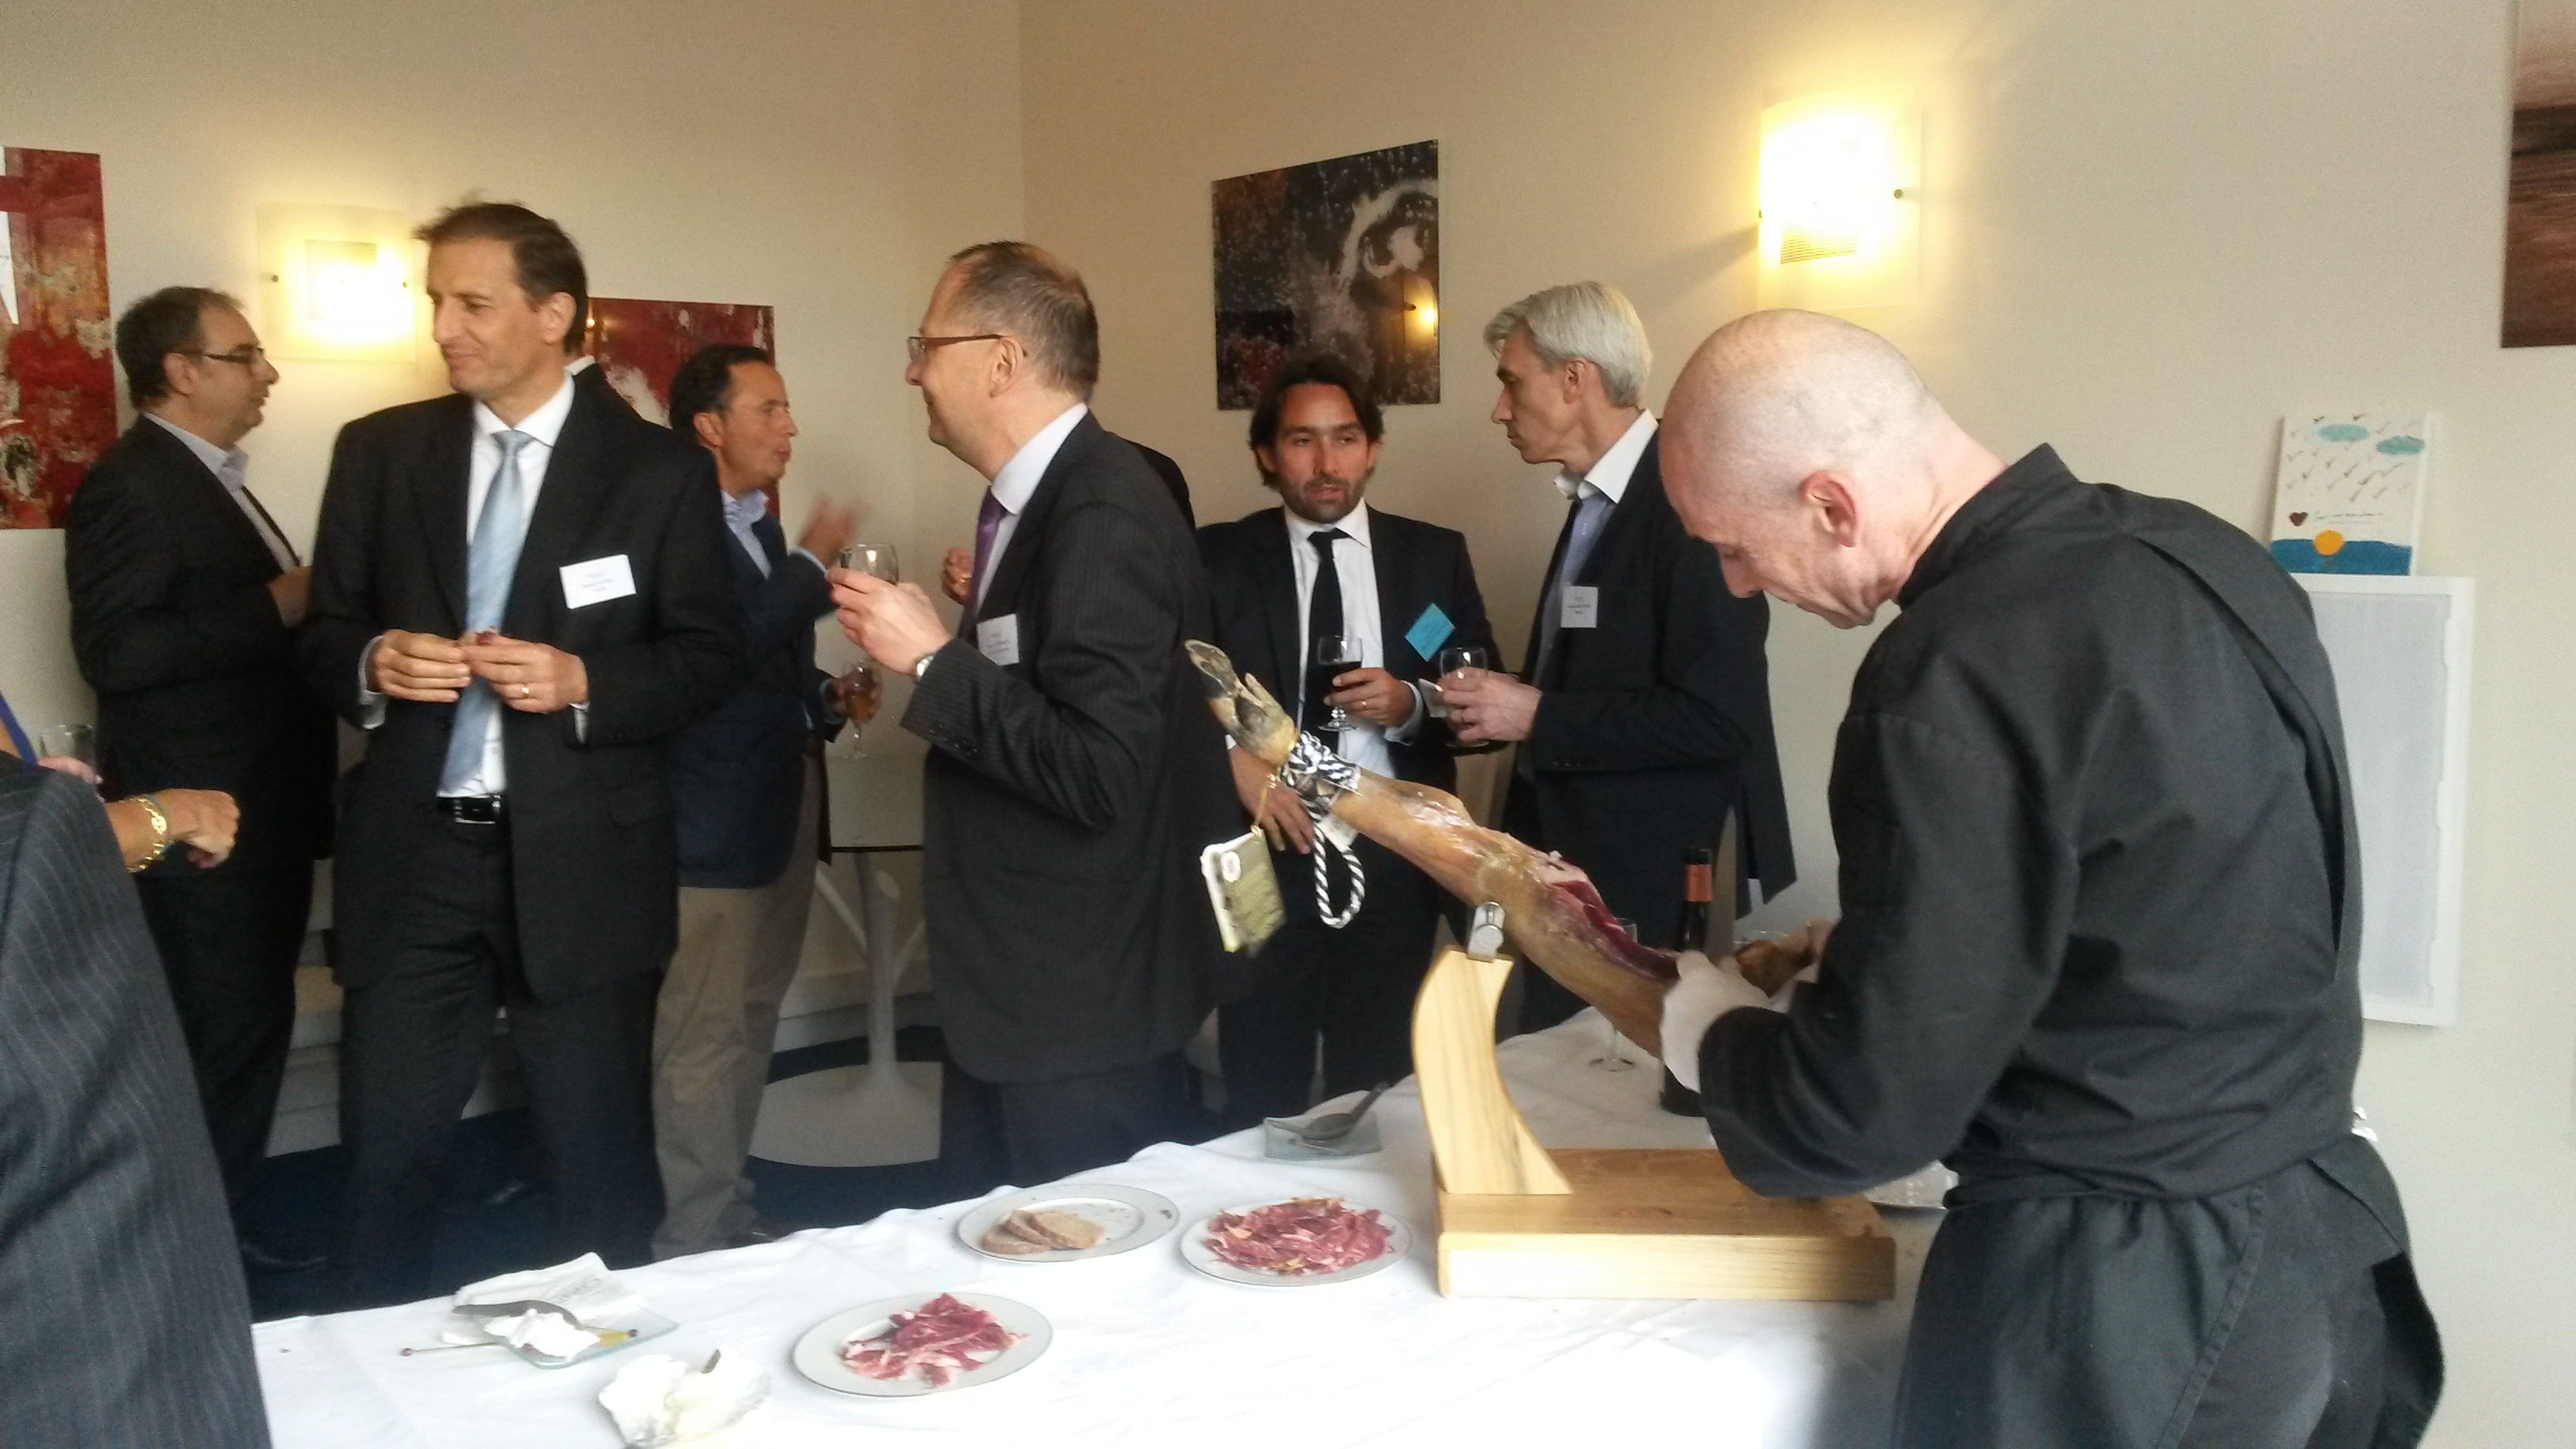 Atelier culinaire de Pata Negra chez ARROWMAN Executive Search